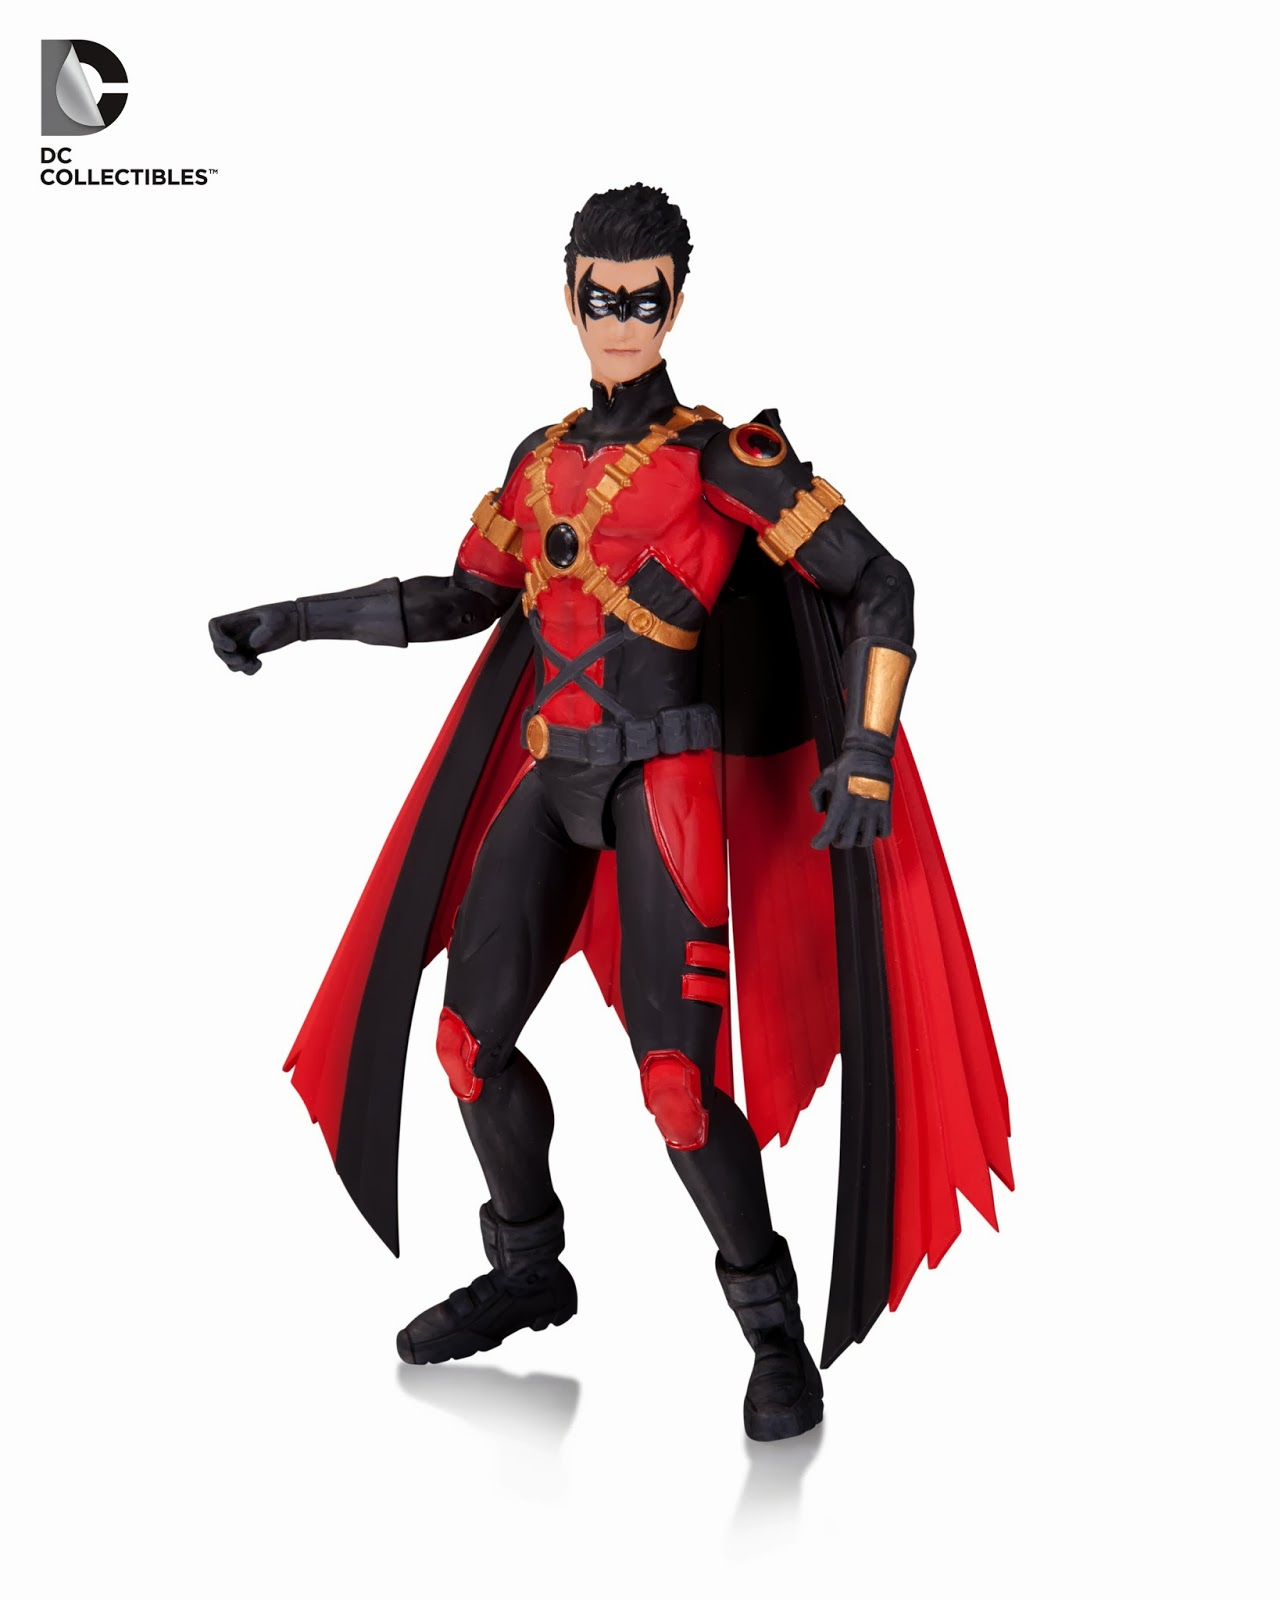 Teen Titan Character Toys : Dcc teen titans red robin toy discussion at toyark